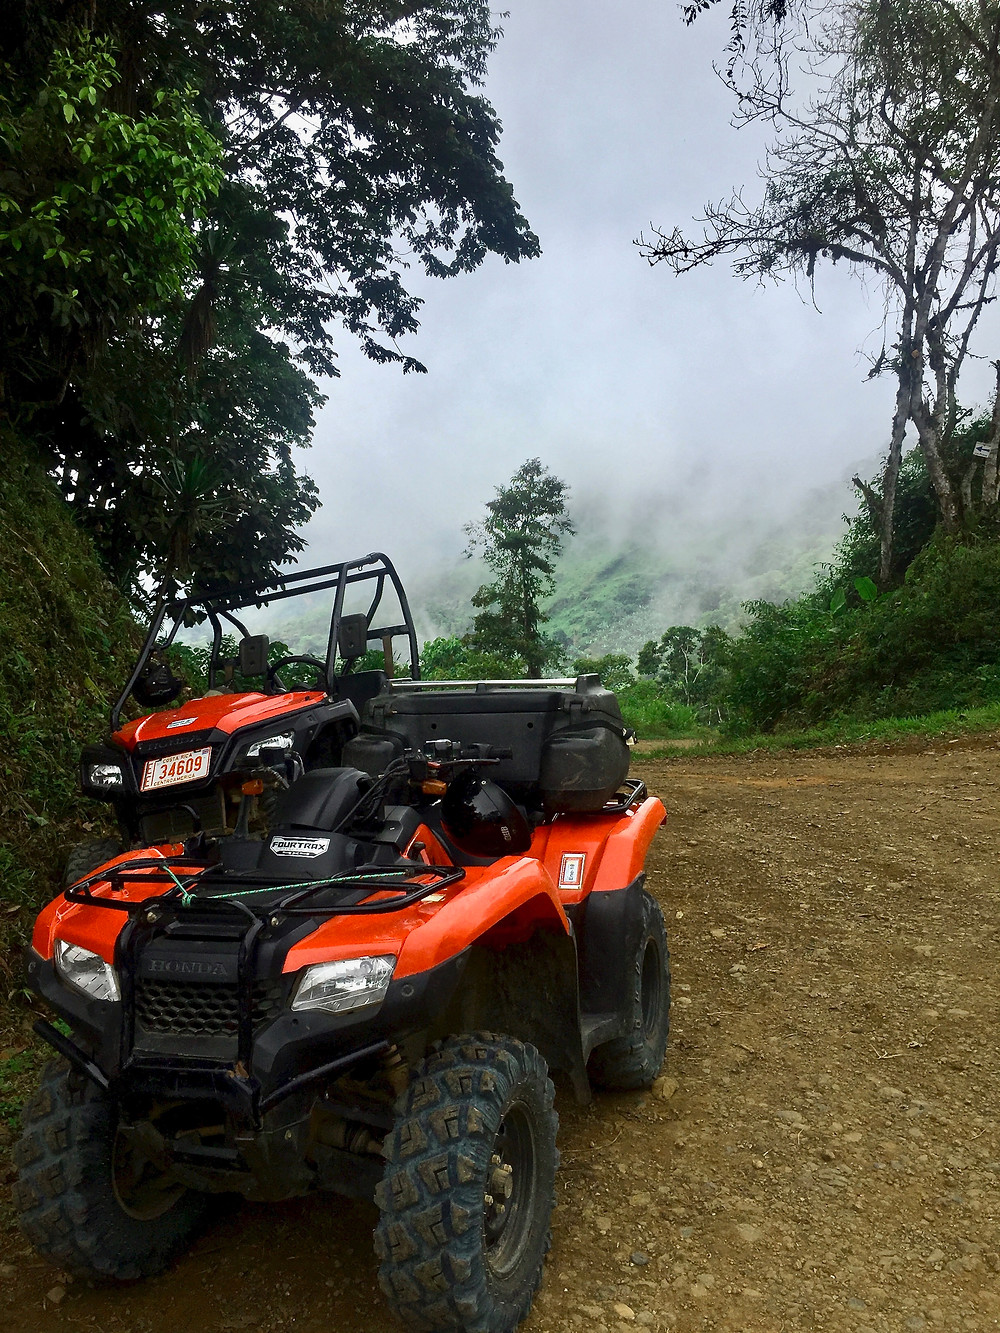 the fog covers the mountain as we go sloth hunting